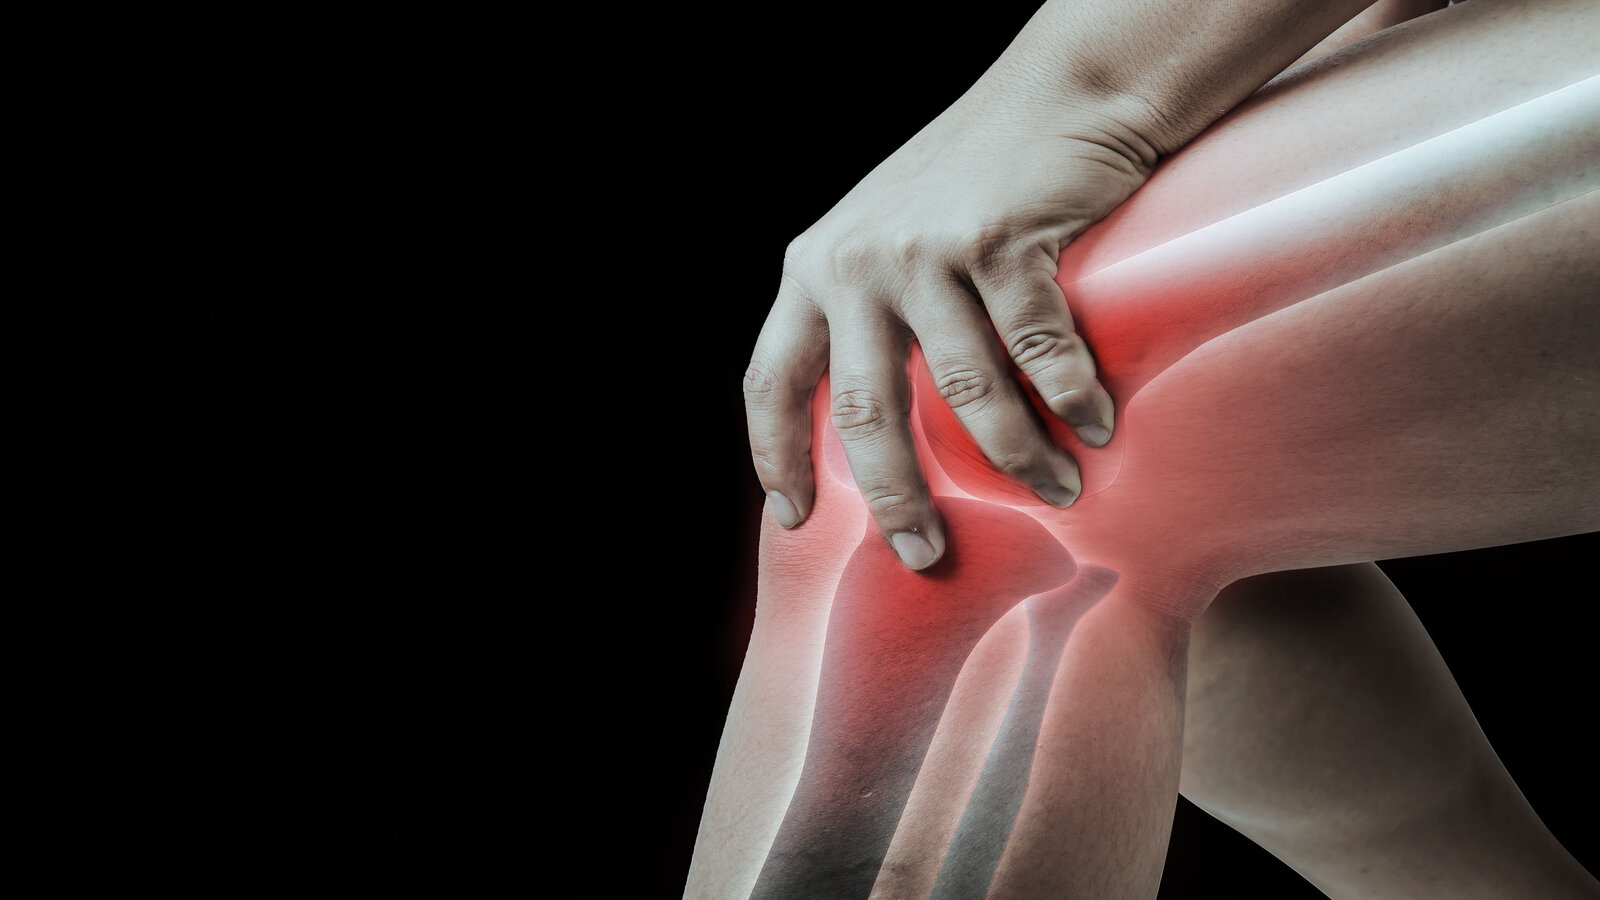 knee injury in humans .knee pain,joint pains people medical, mon